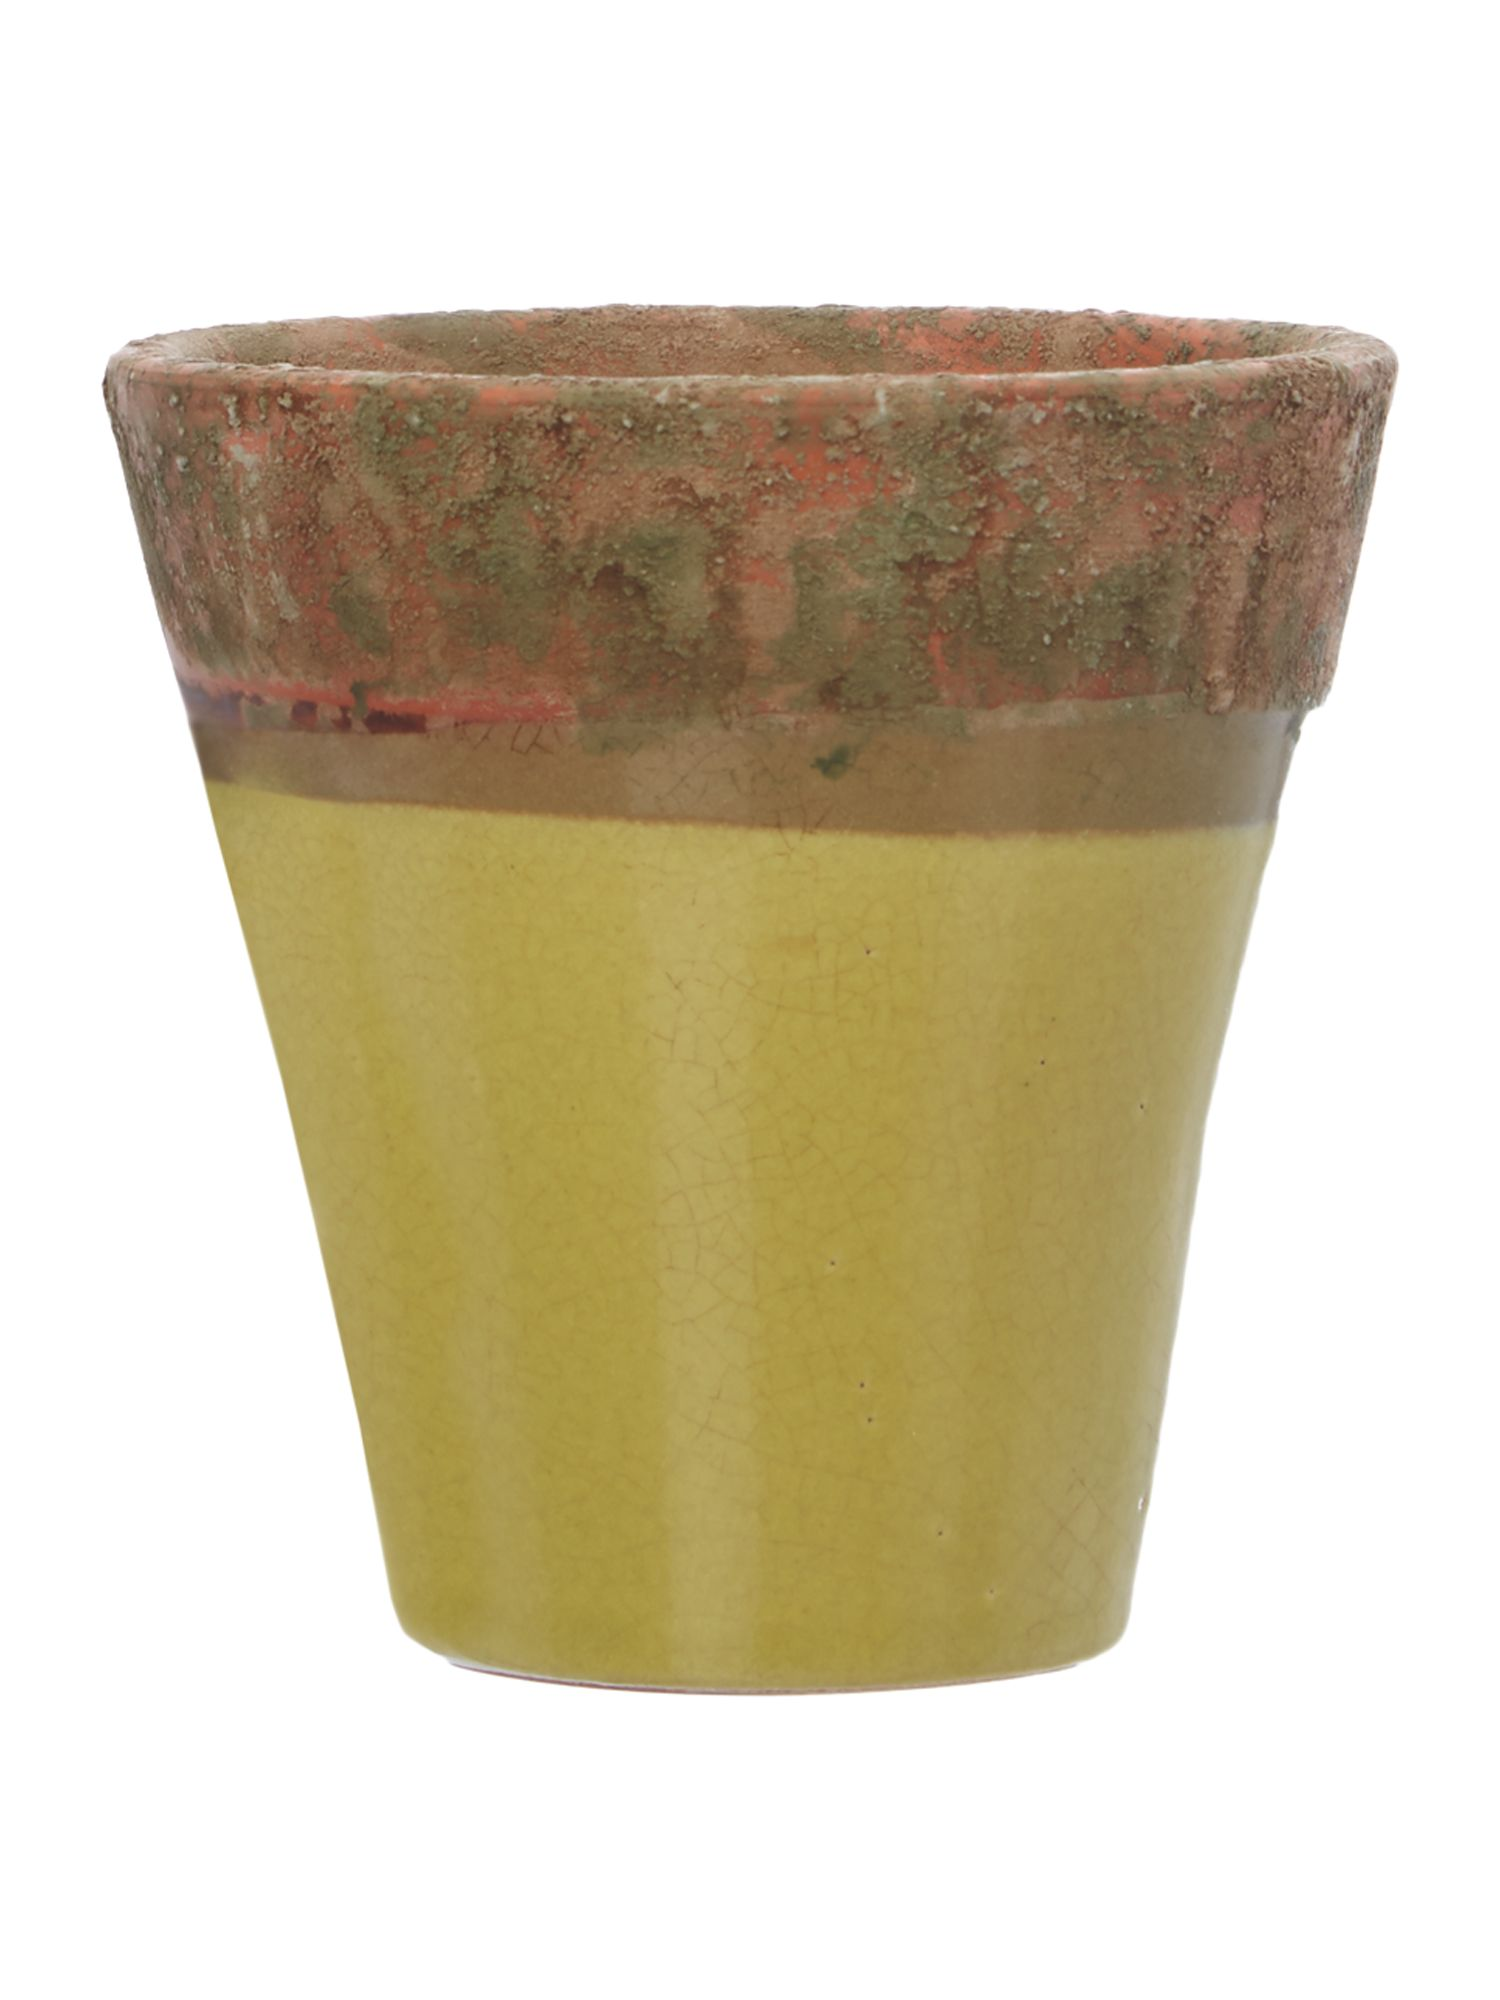 Ceramic pot, small